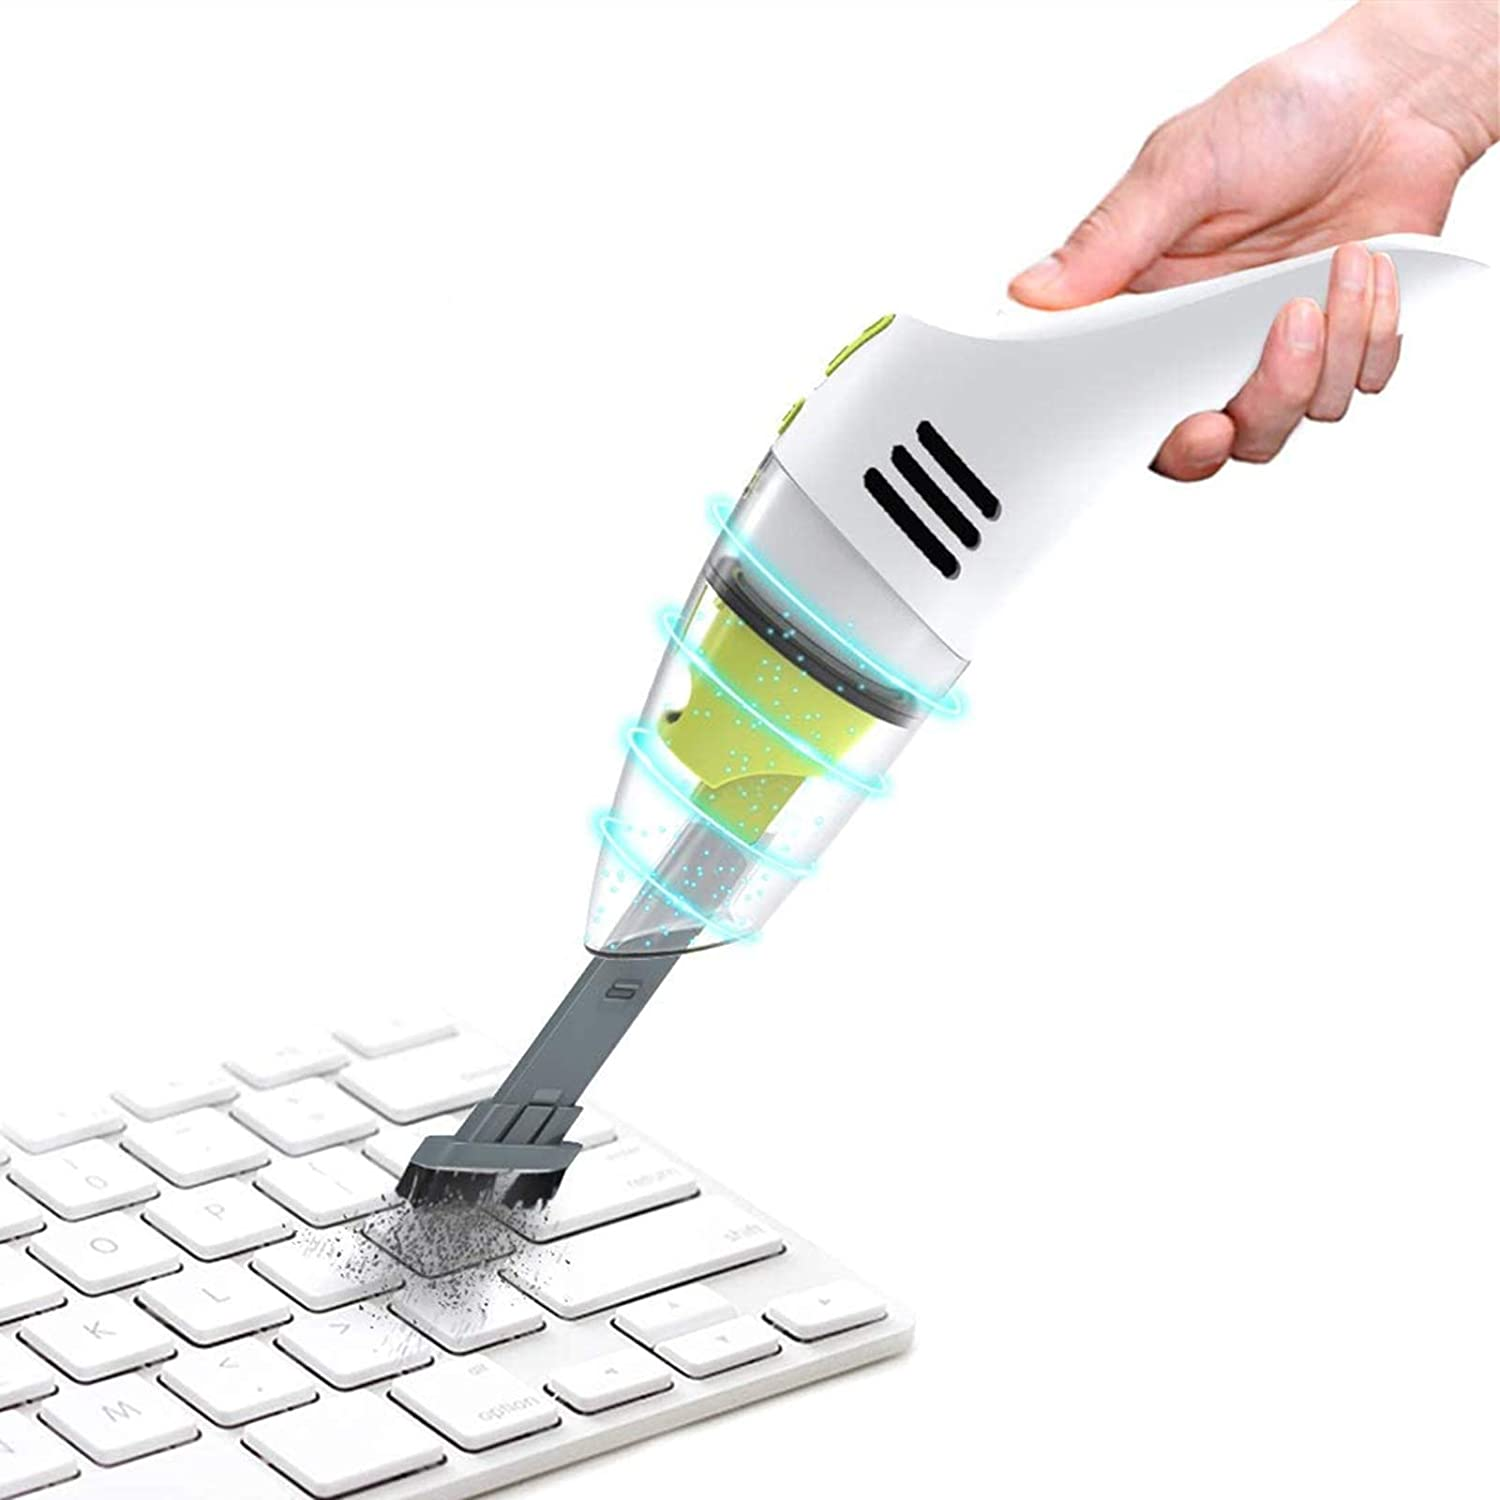 Air Duster and Hand Pump 3 in 1 Portable Dust Busters Easy to Clean for Car,Home Pet Hair Keyboard,Computer,Laptop Mini Handheld Vacuum Cleaner Cordless Car Hand Held Vaccume